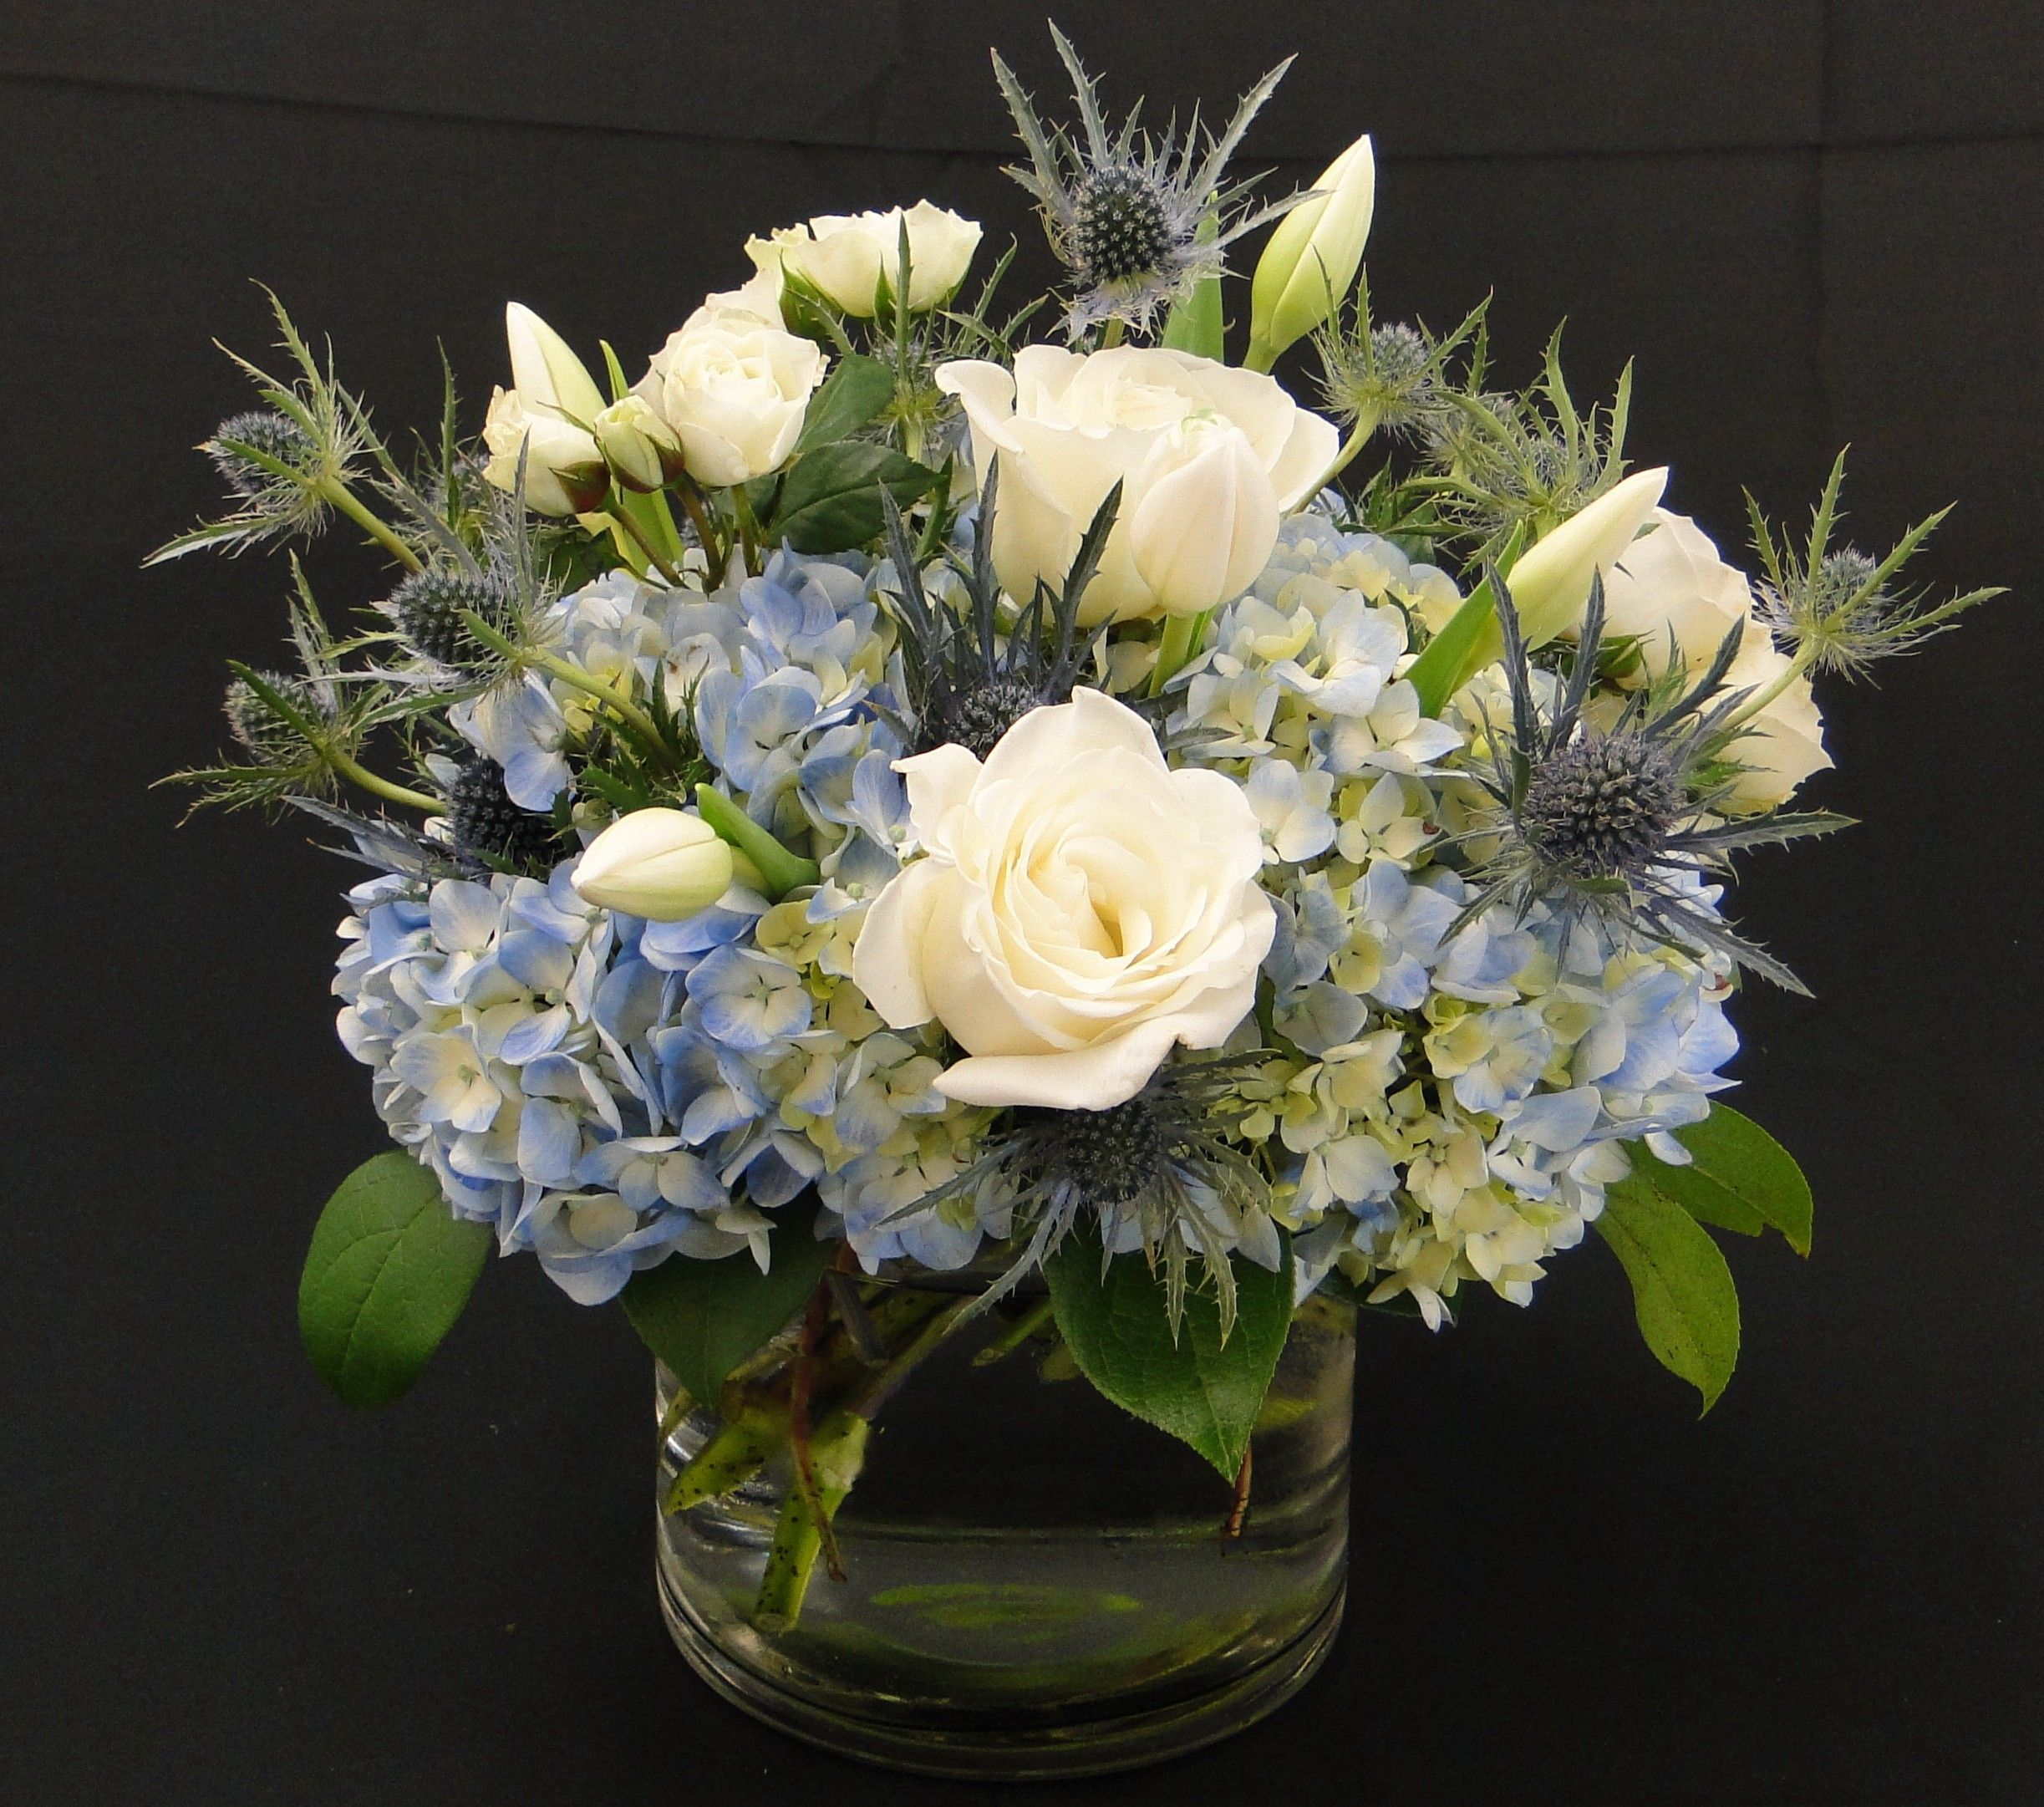 Cool Reflection-   A calming seaside gathering of soft blues, and sandy ivories using hydrangea, eryngium, roses and tulips to transport you another place. Cool Reflection White, Green, Blue PJ's Flowers & Events Tony Medlock